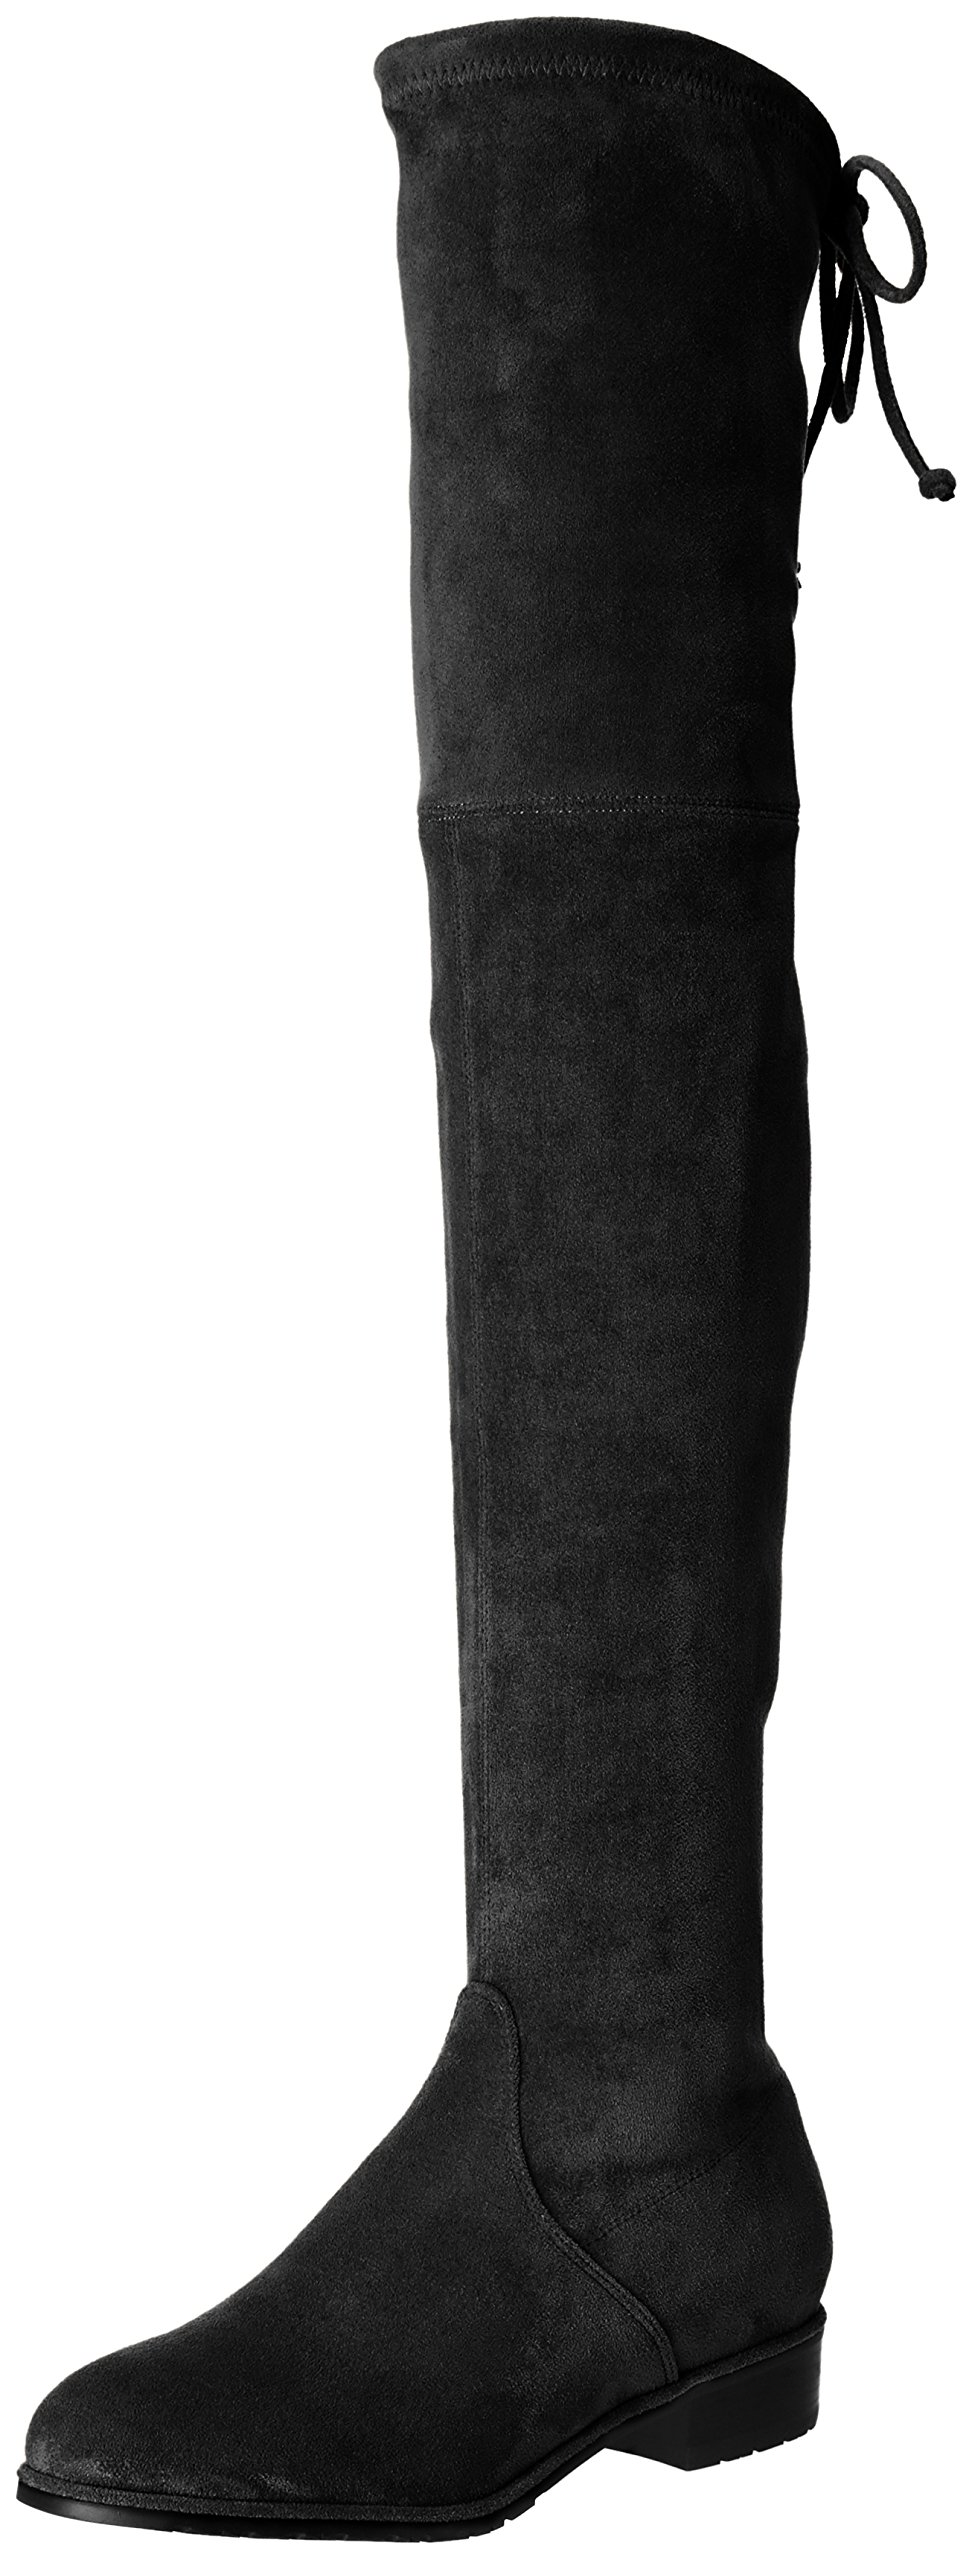 966b57c7a03 Kaitlyn Pan Women s Microsuede Flat Heel Over The Knee Thigh High Boots  product image